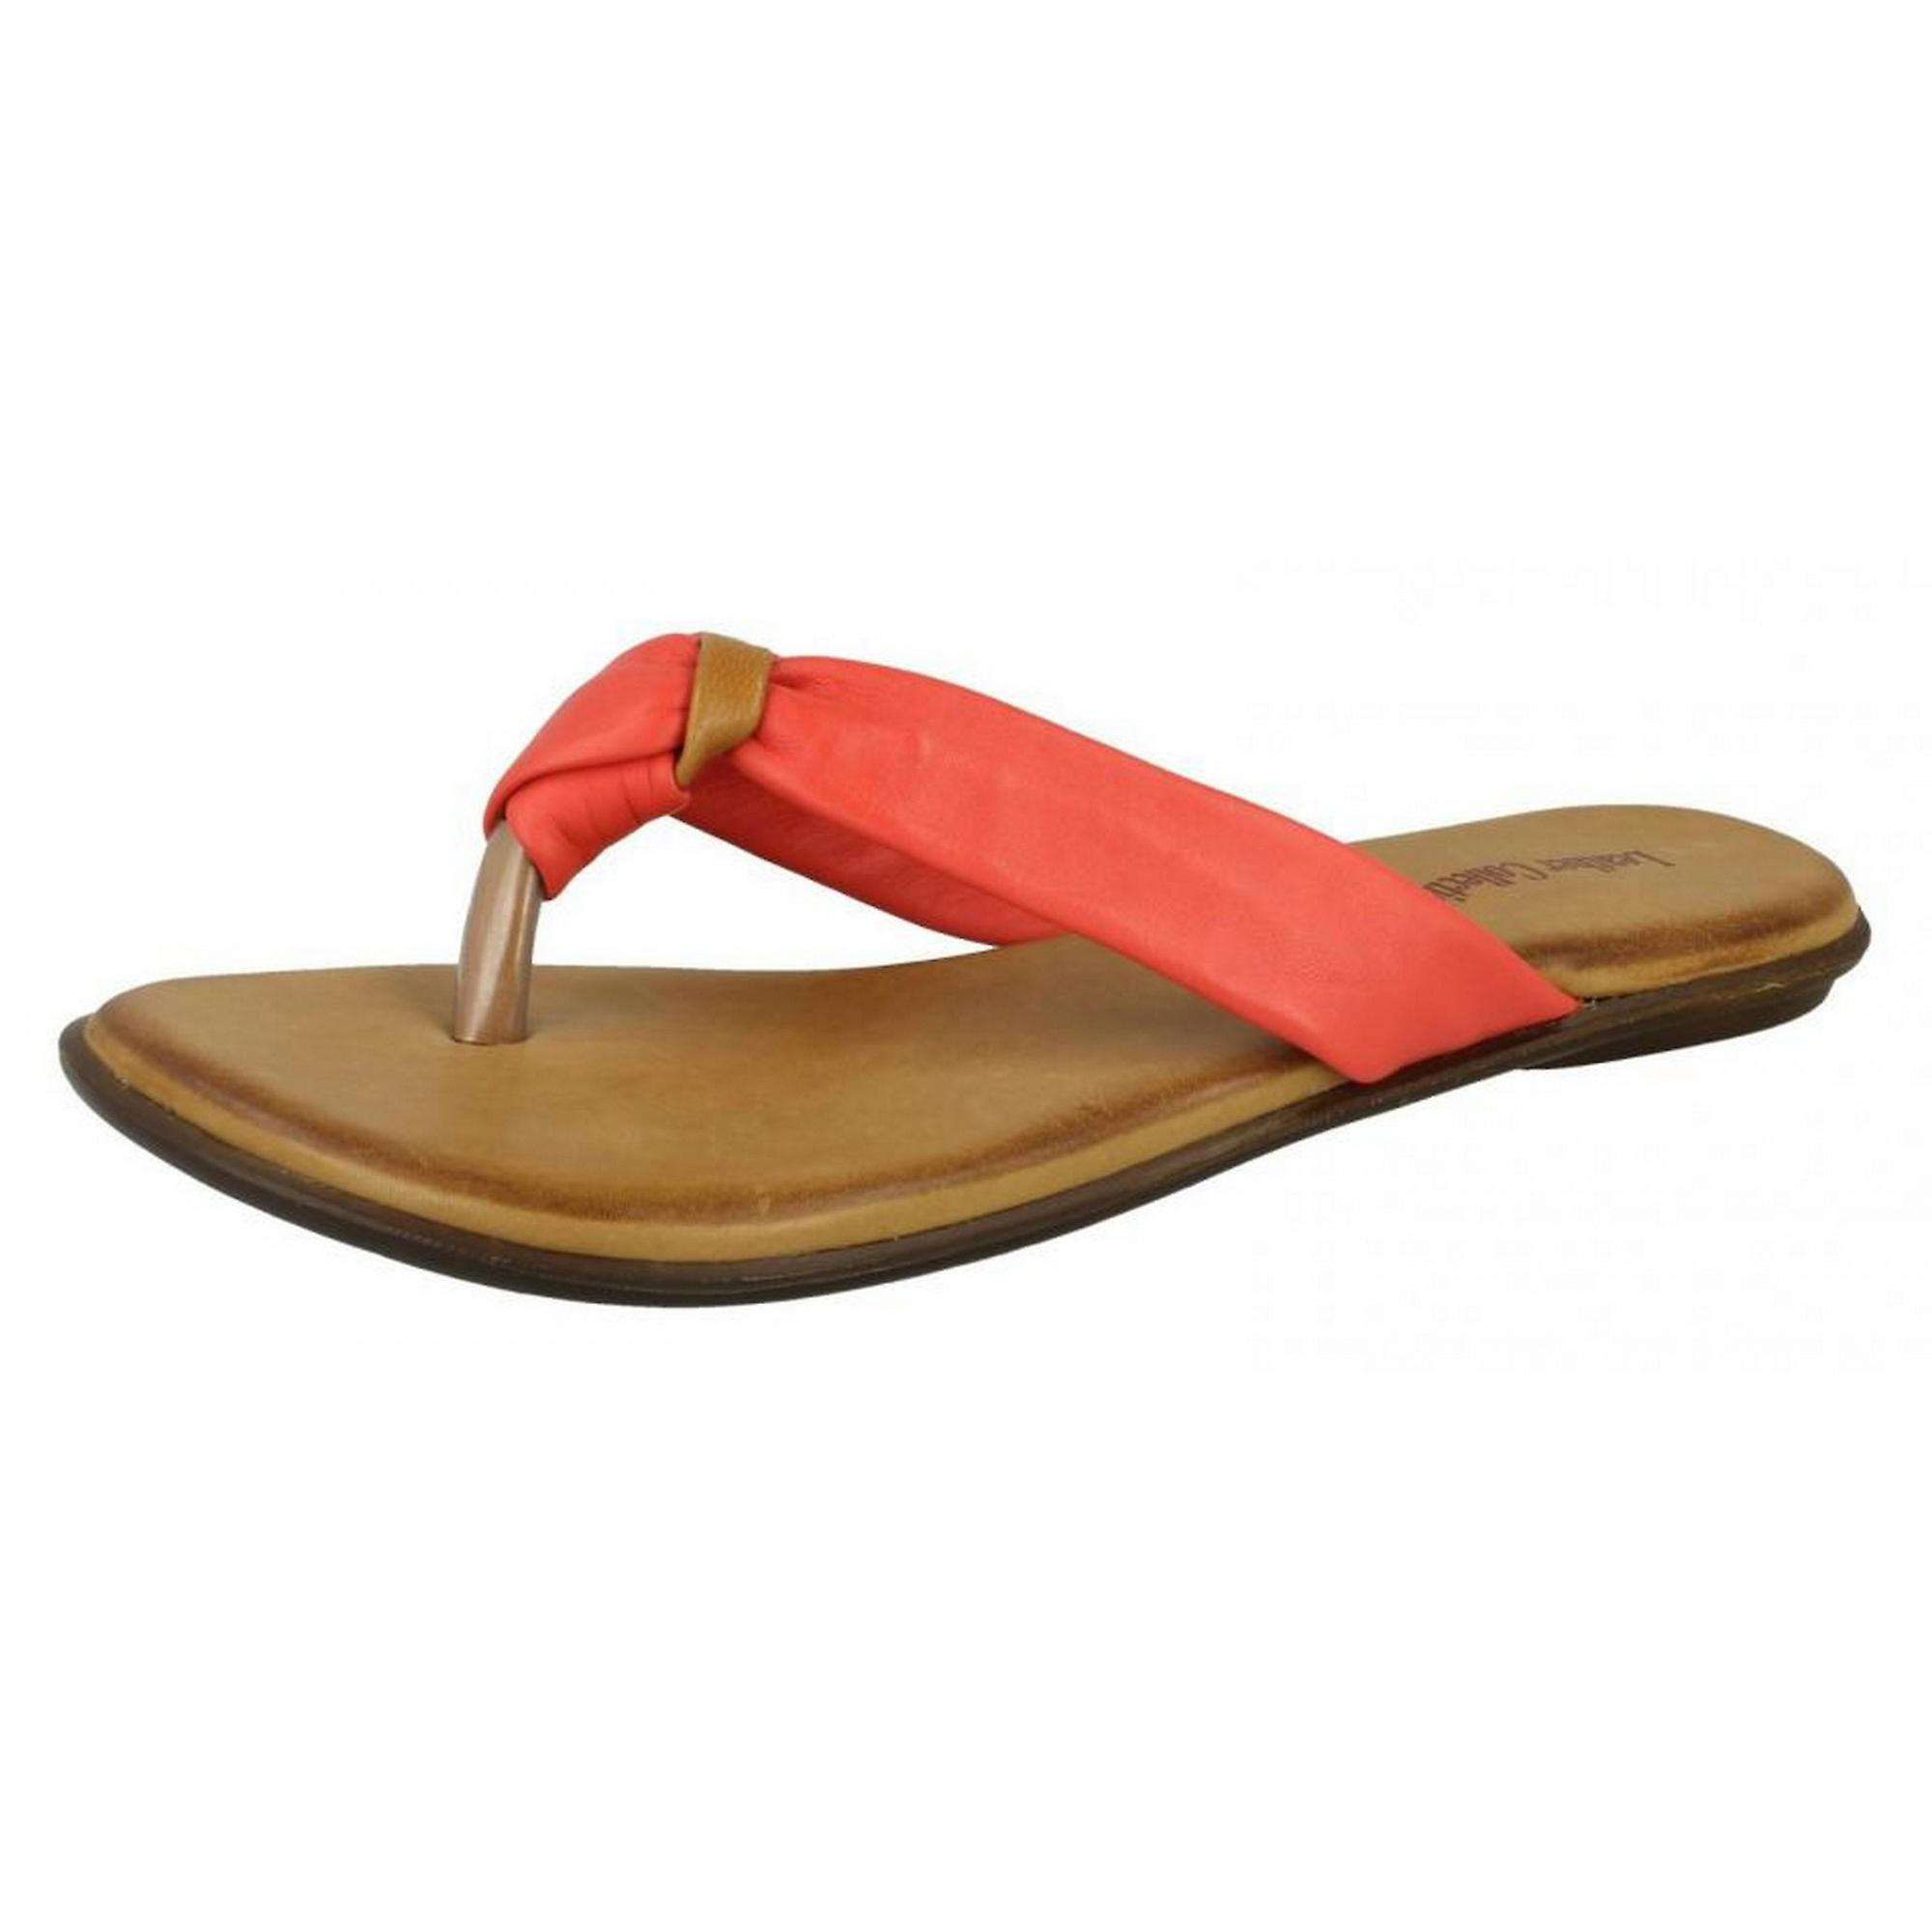 d5e5fba3391 Leather Collection Womens Ladies Knotted Toe Post Flip Flop